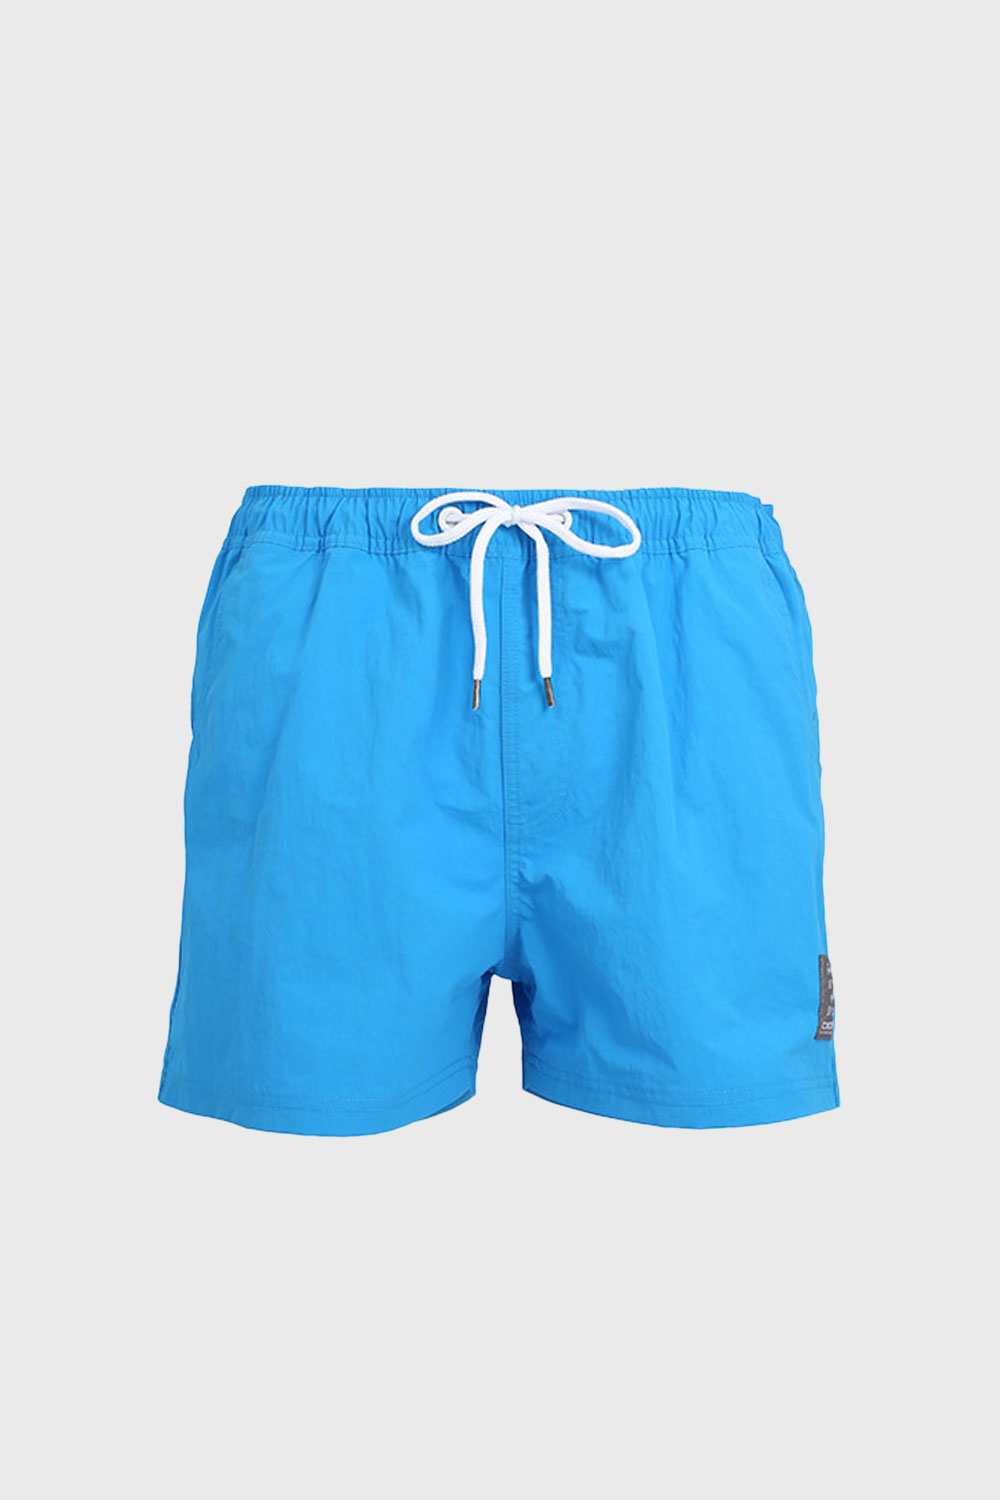 Sort de baie barbatesc Neon Blue